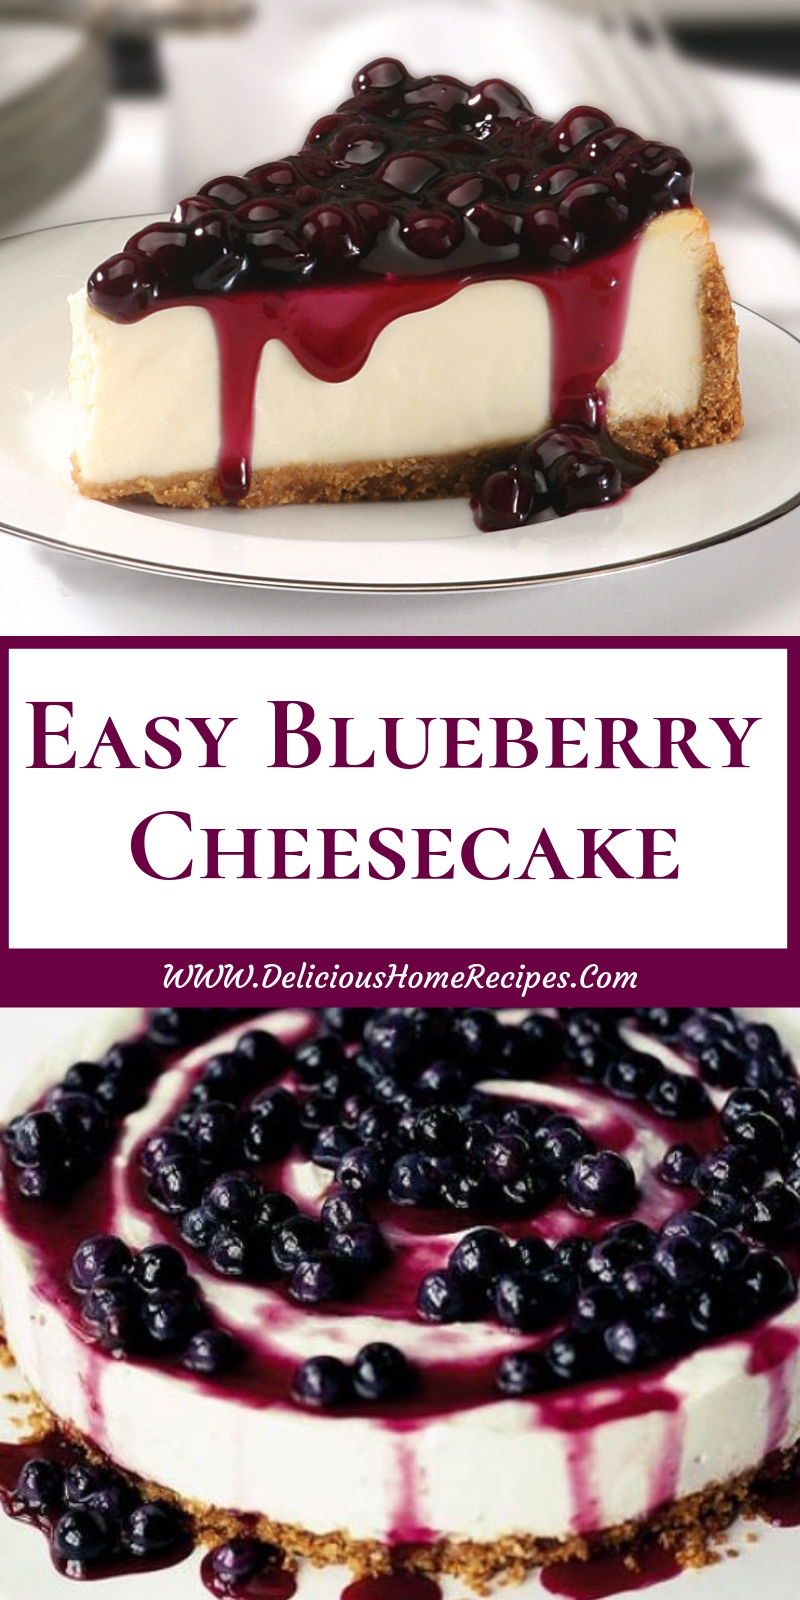 Easy Blueberry Cheesecake